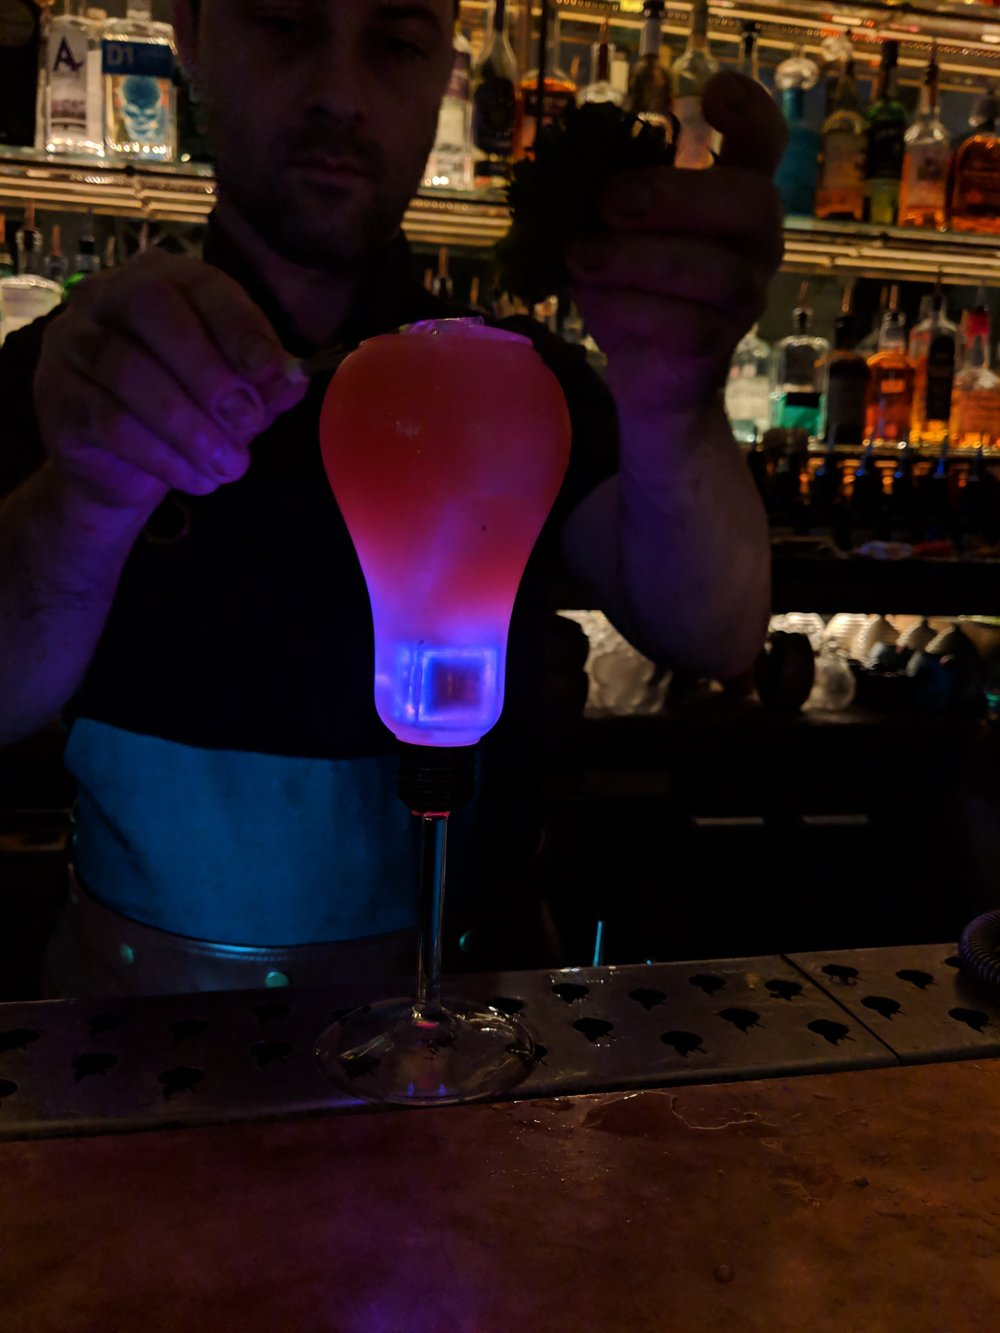 I don't know what cocktail this is, but it looks AWESOME